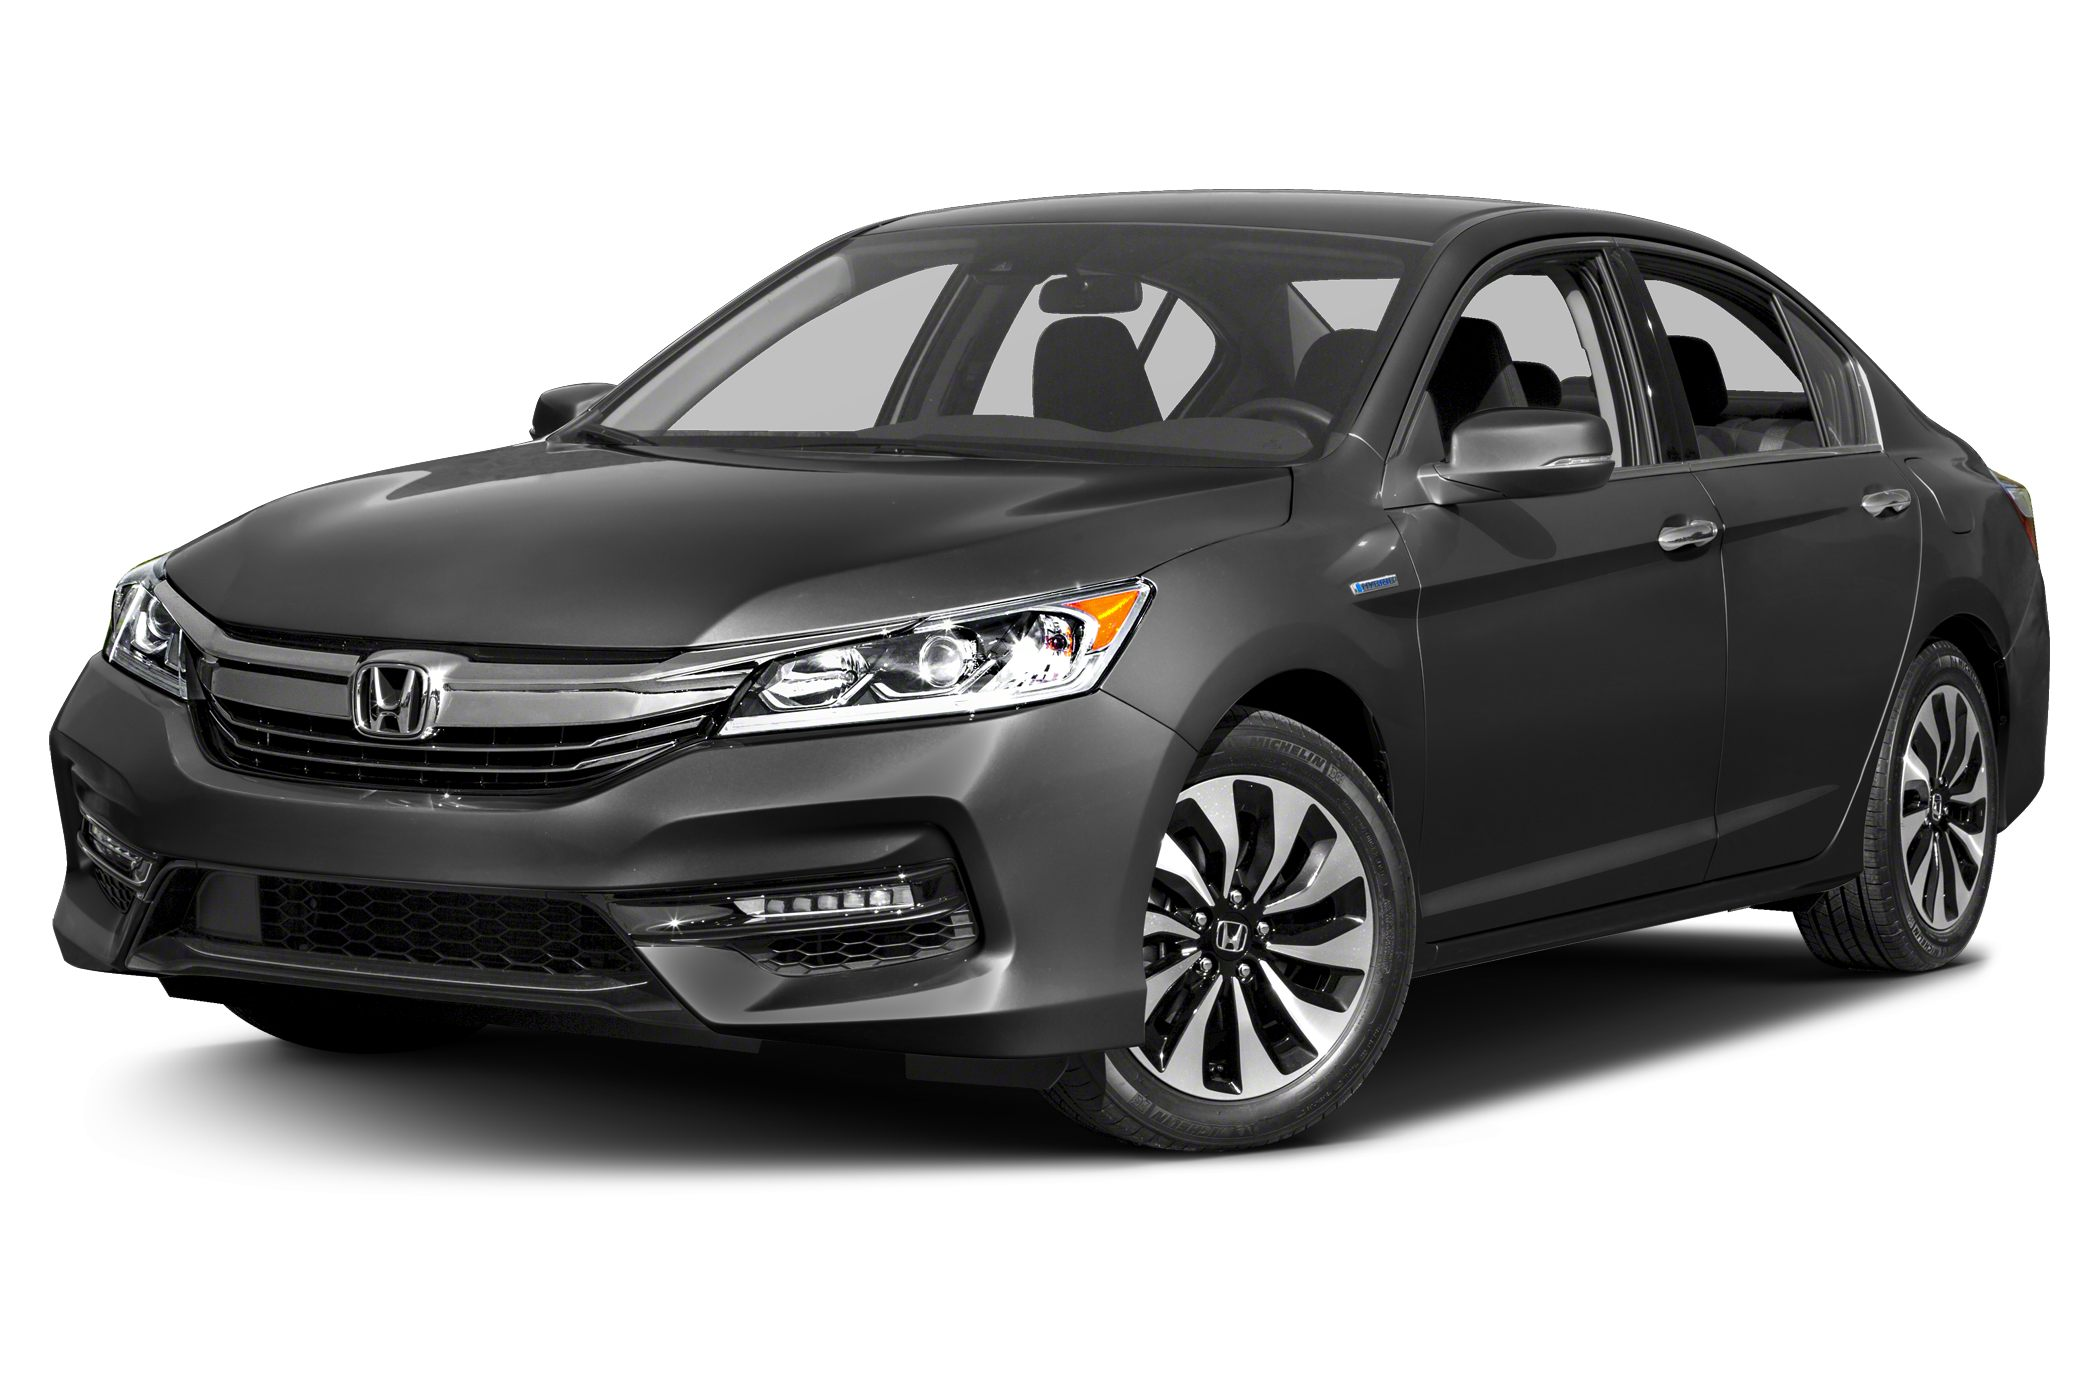 2017 Honda Accord Hybrid Base As strong as an ox Gets a lot of bang for the buck Buy a new Honda